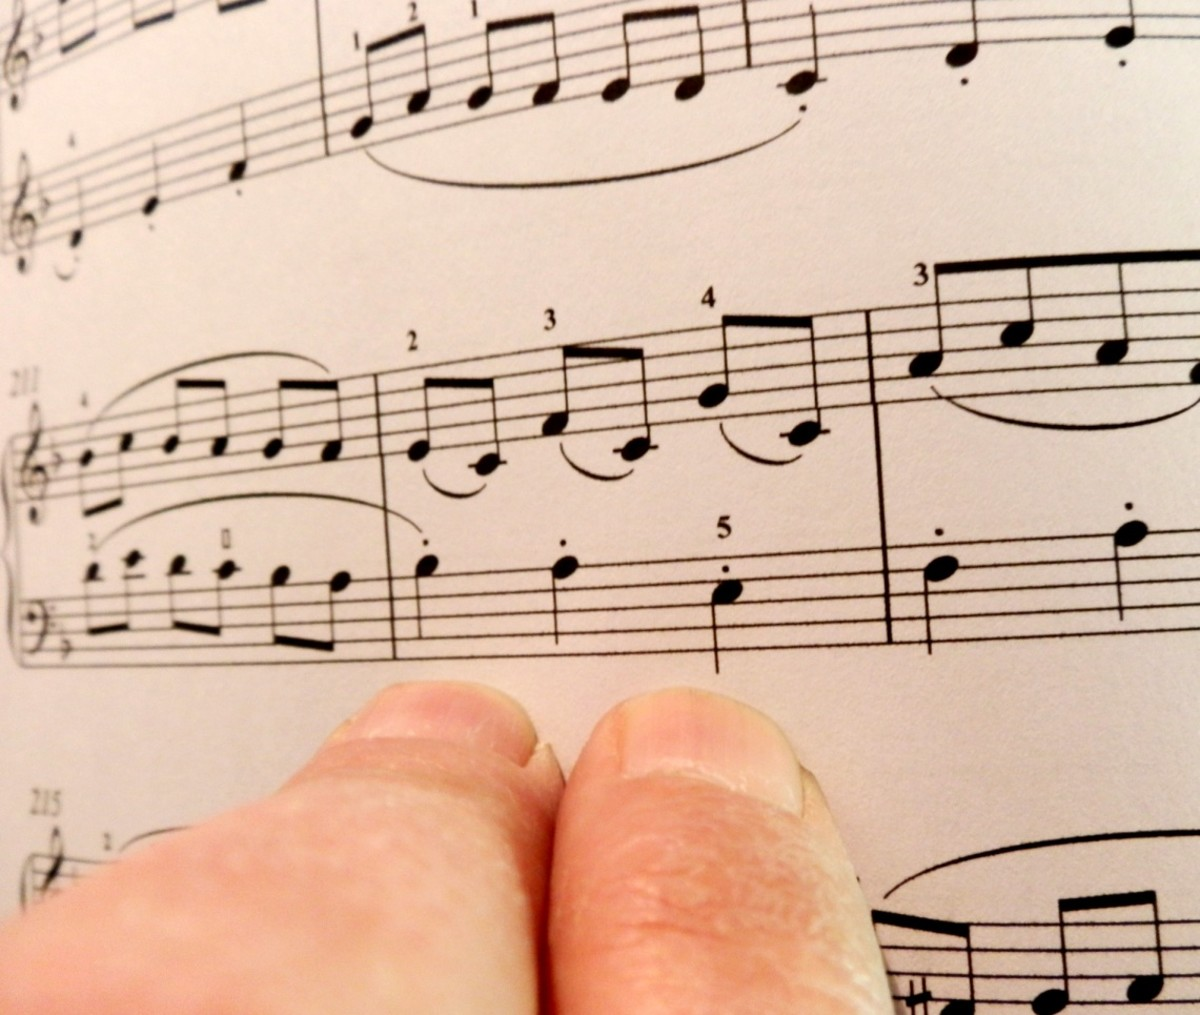 Practise away from the piano to challenge yourself